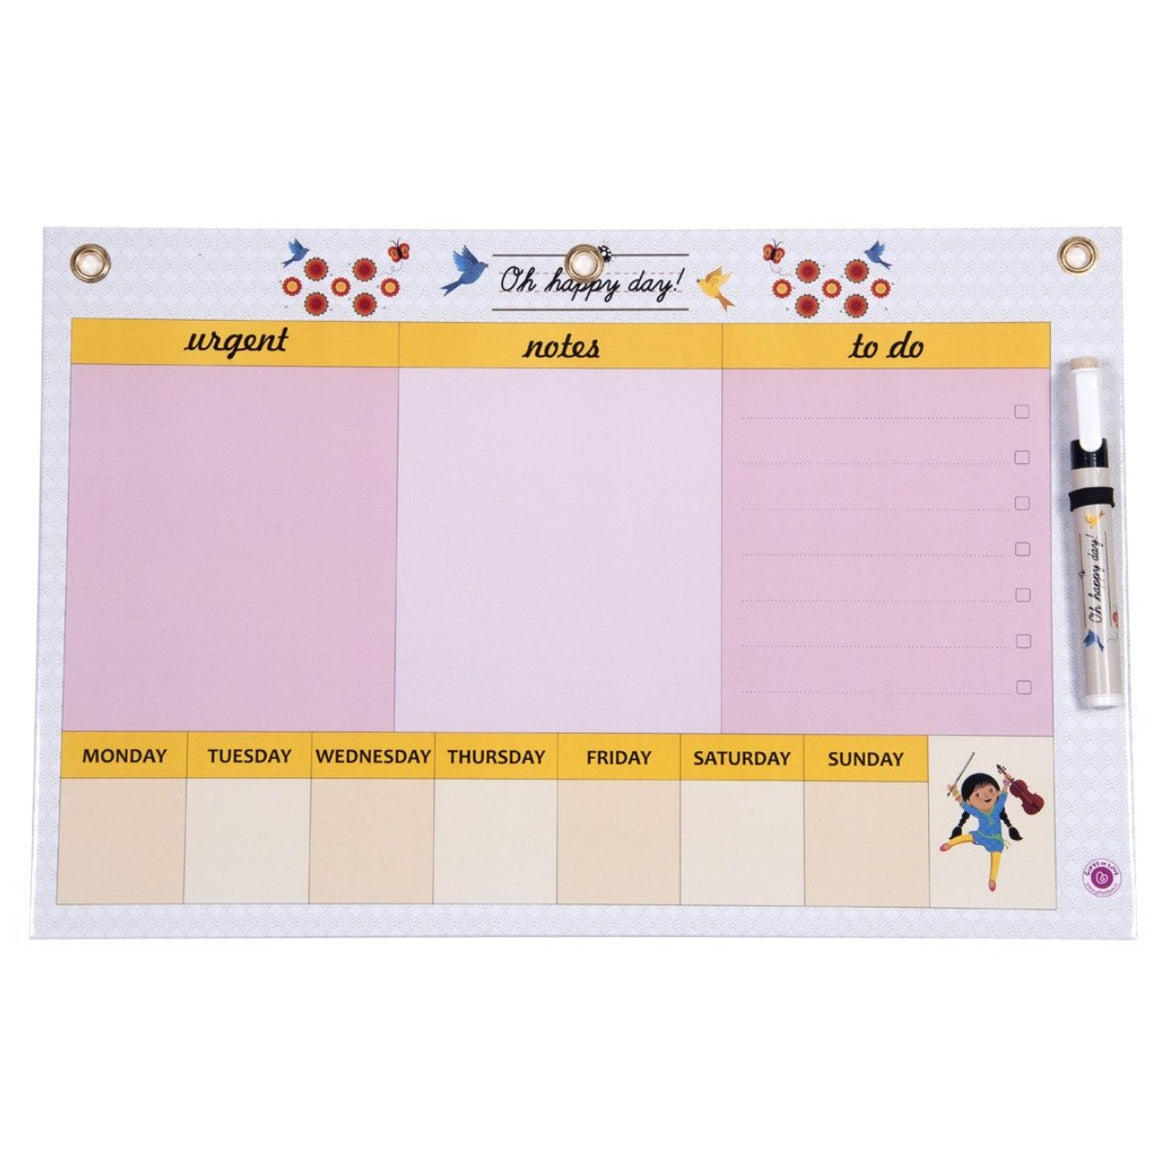 Dry Erase Board Big - Oh Happy Day Handy Planner